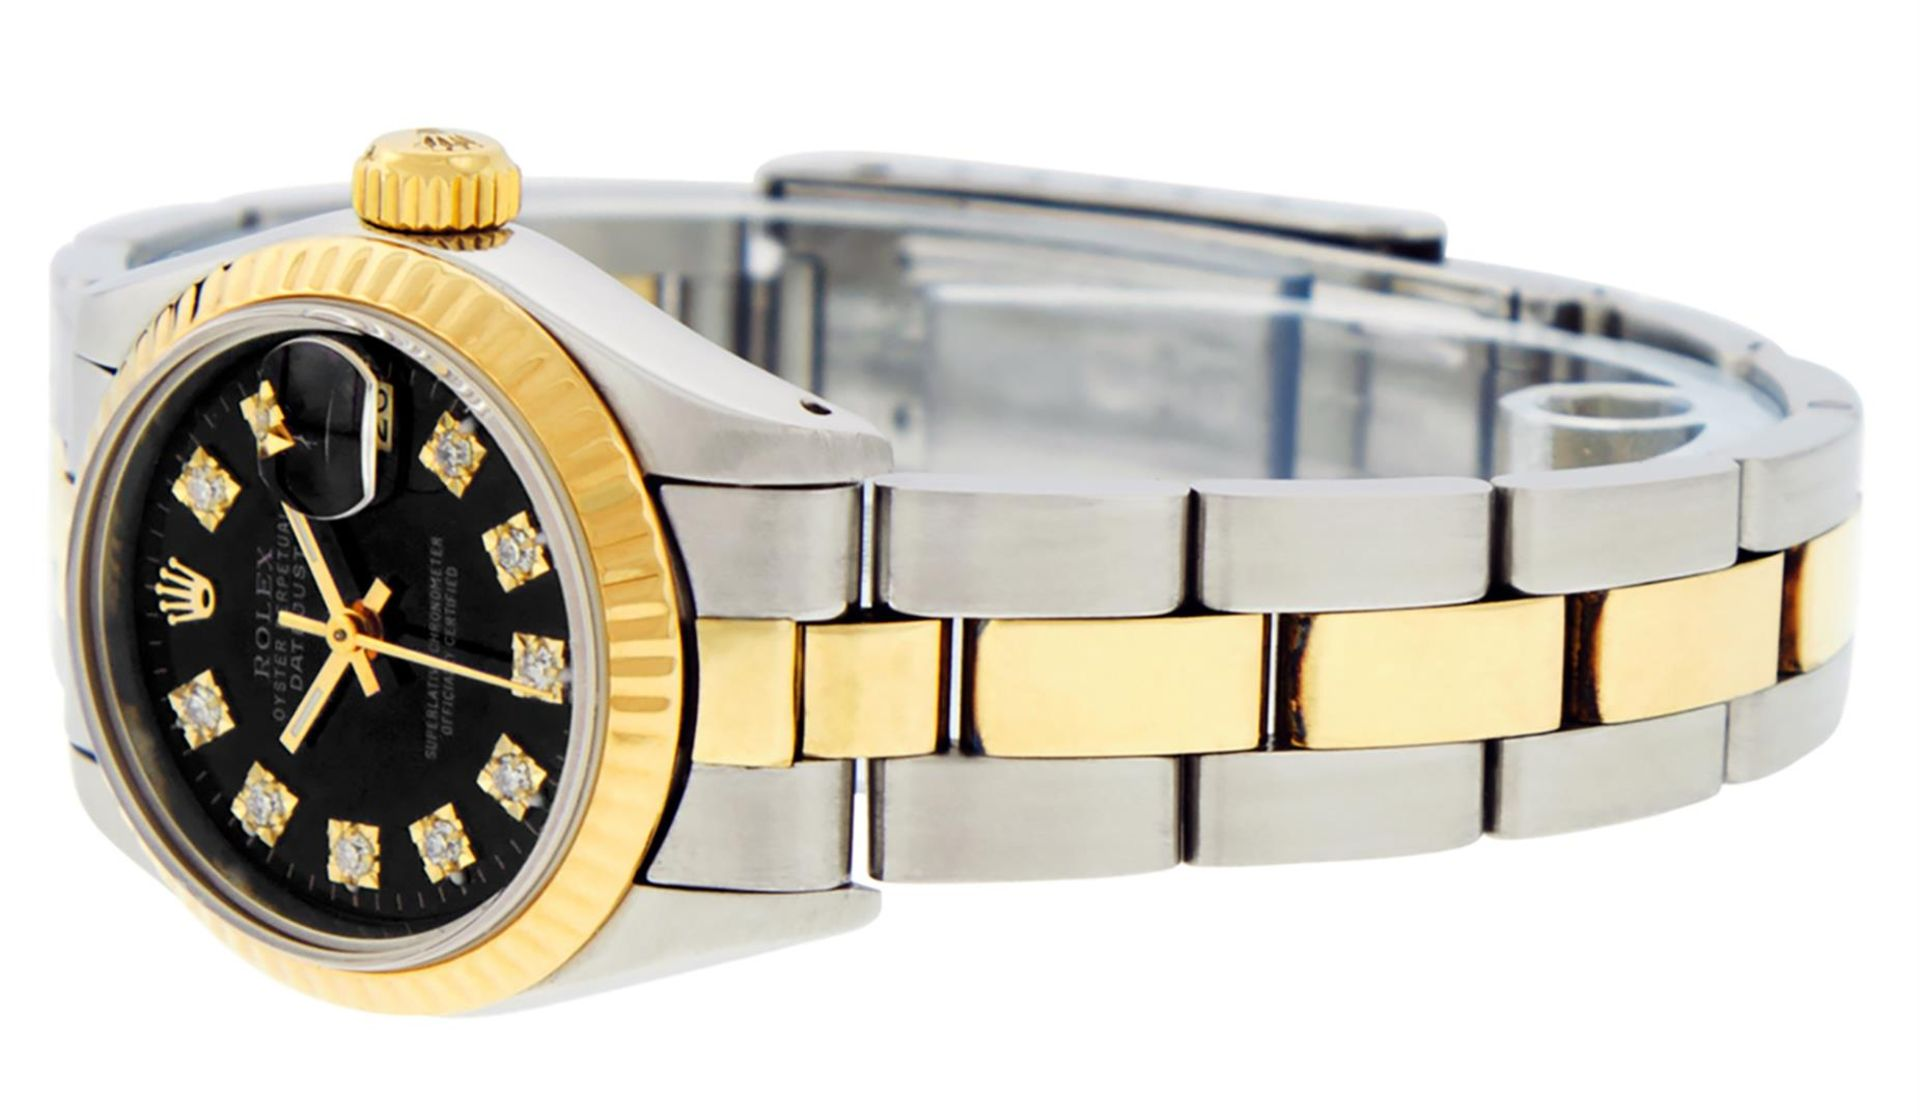 Rolex Ladies 26 Black Diamond Oyster Perpetual Datejust Polished Serviced - Image 7 of 9